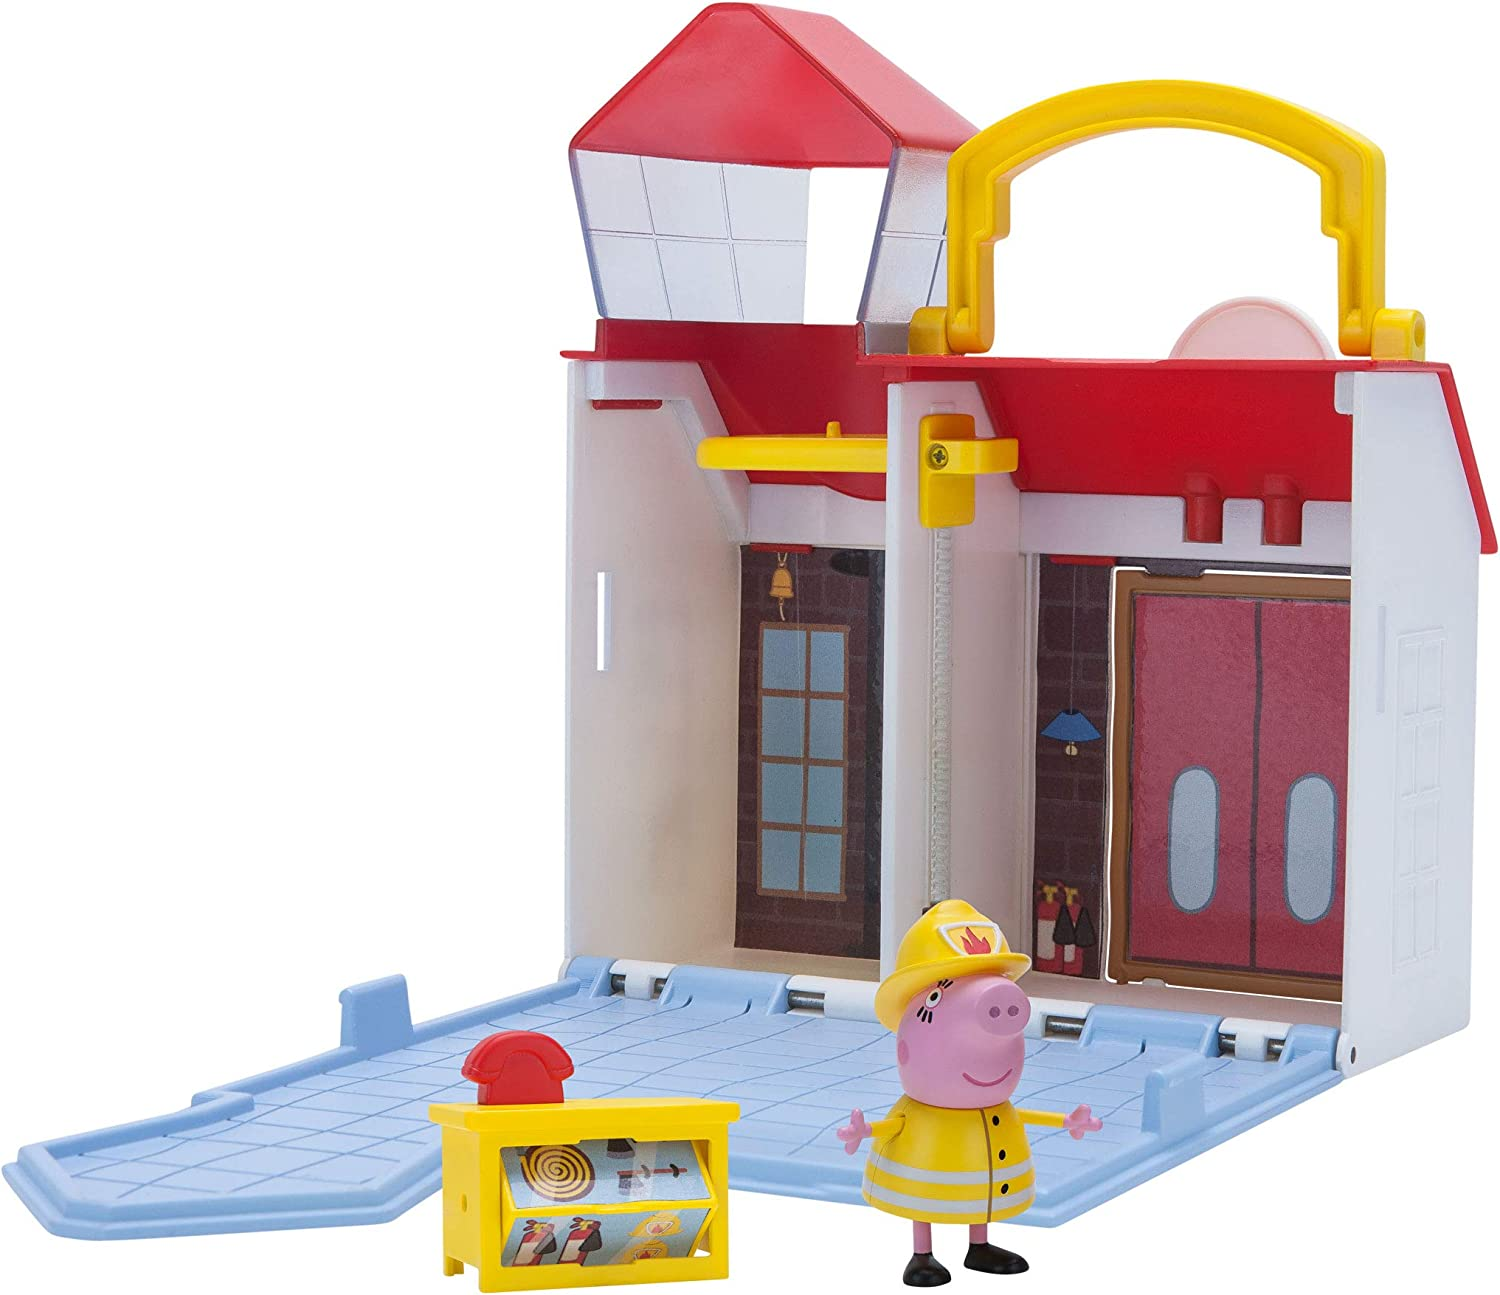 Peppa Pig Collect Build /& Play Figures ALL 13 NEW IN PACKAGE